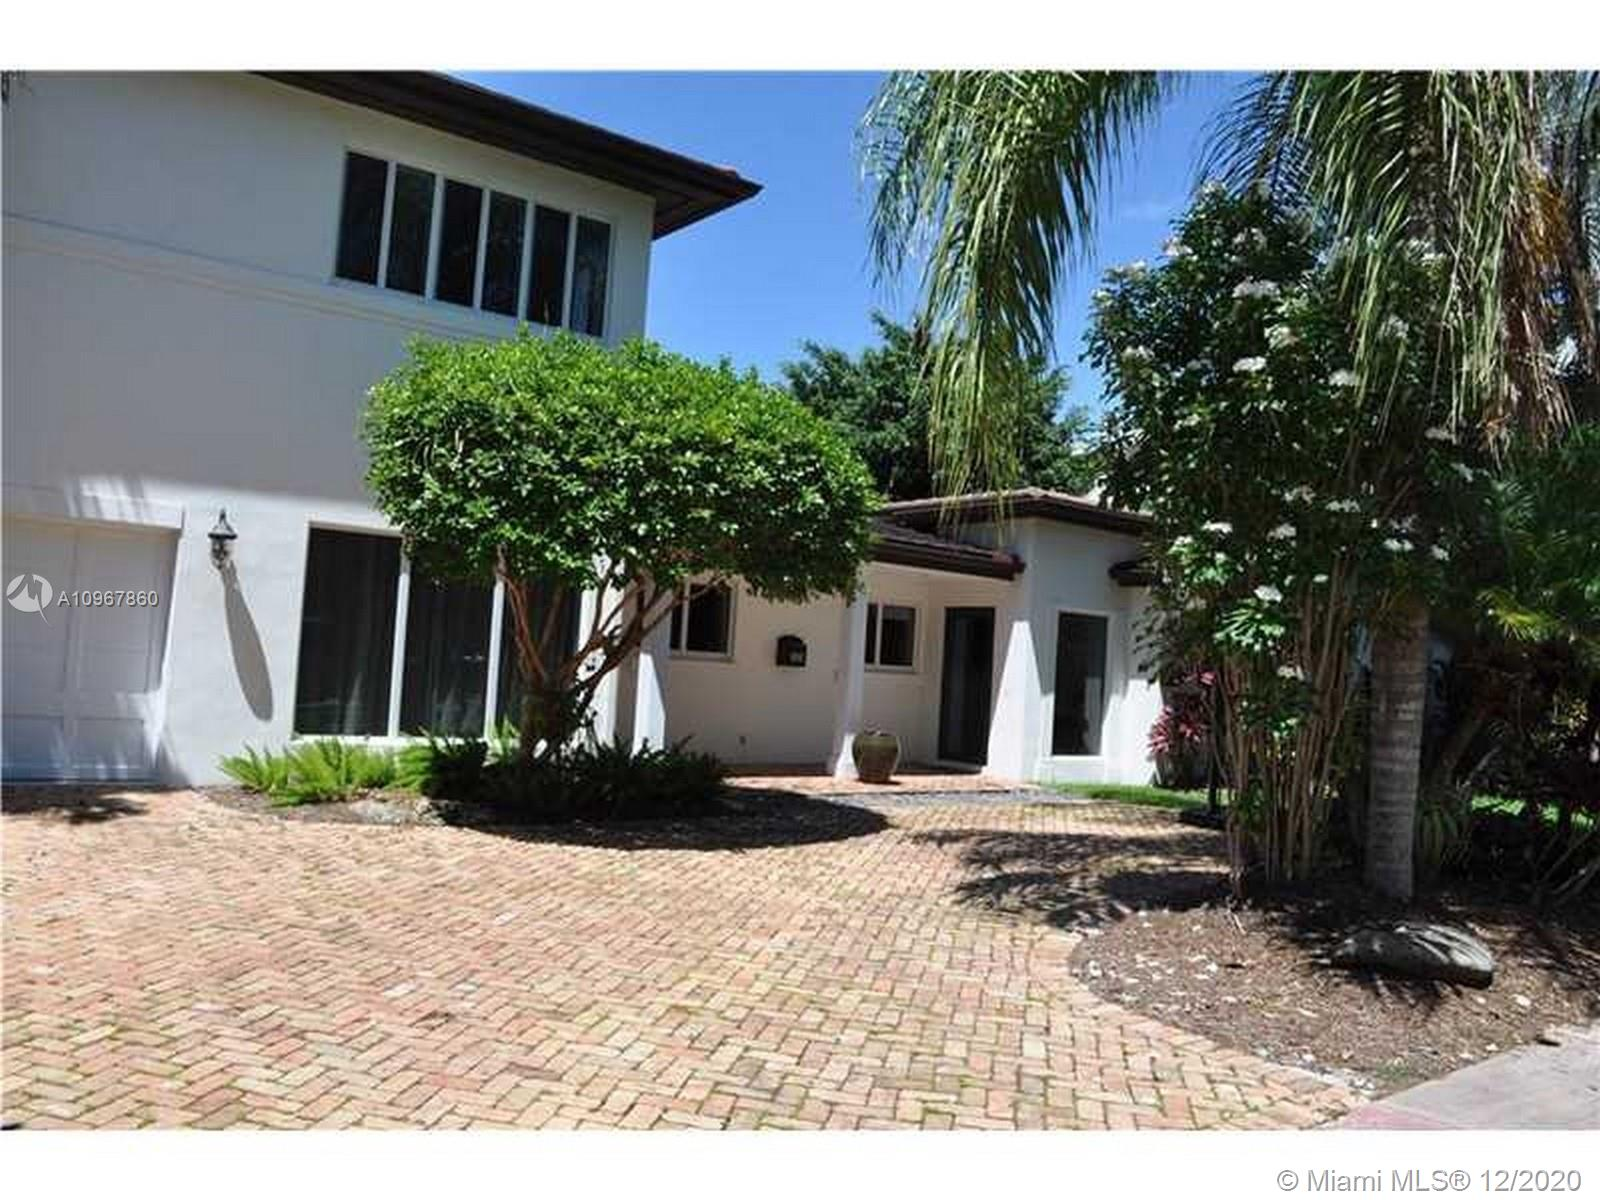 Located in a quiet street in Coral Gables Riviera, this spacious 2 story family house was renovated in 2011. Offering 5 bd/5 bth and a den spread out over 4,200 sf, this home sits on 10,655 sqft lot. The generous floor plan features formal dining area, a second floor master or in law quarter, with